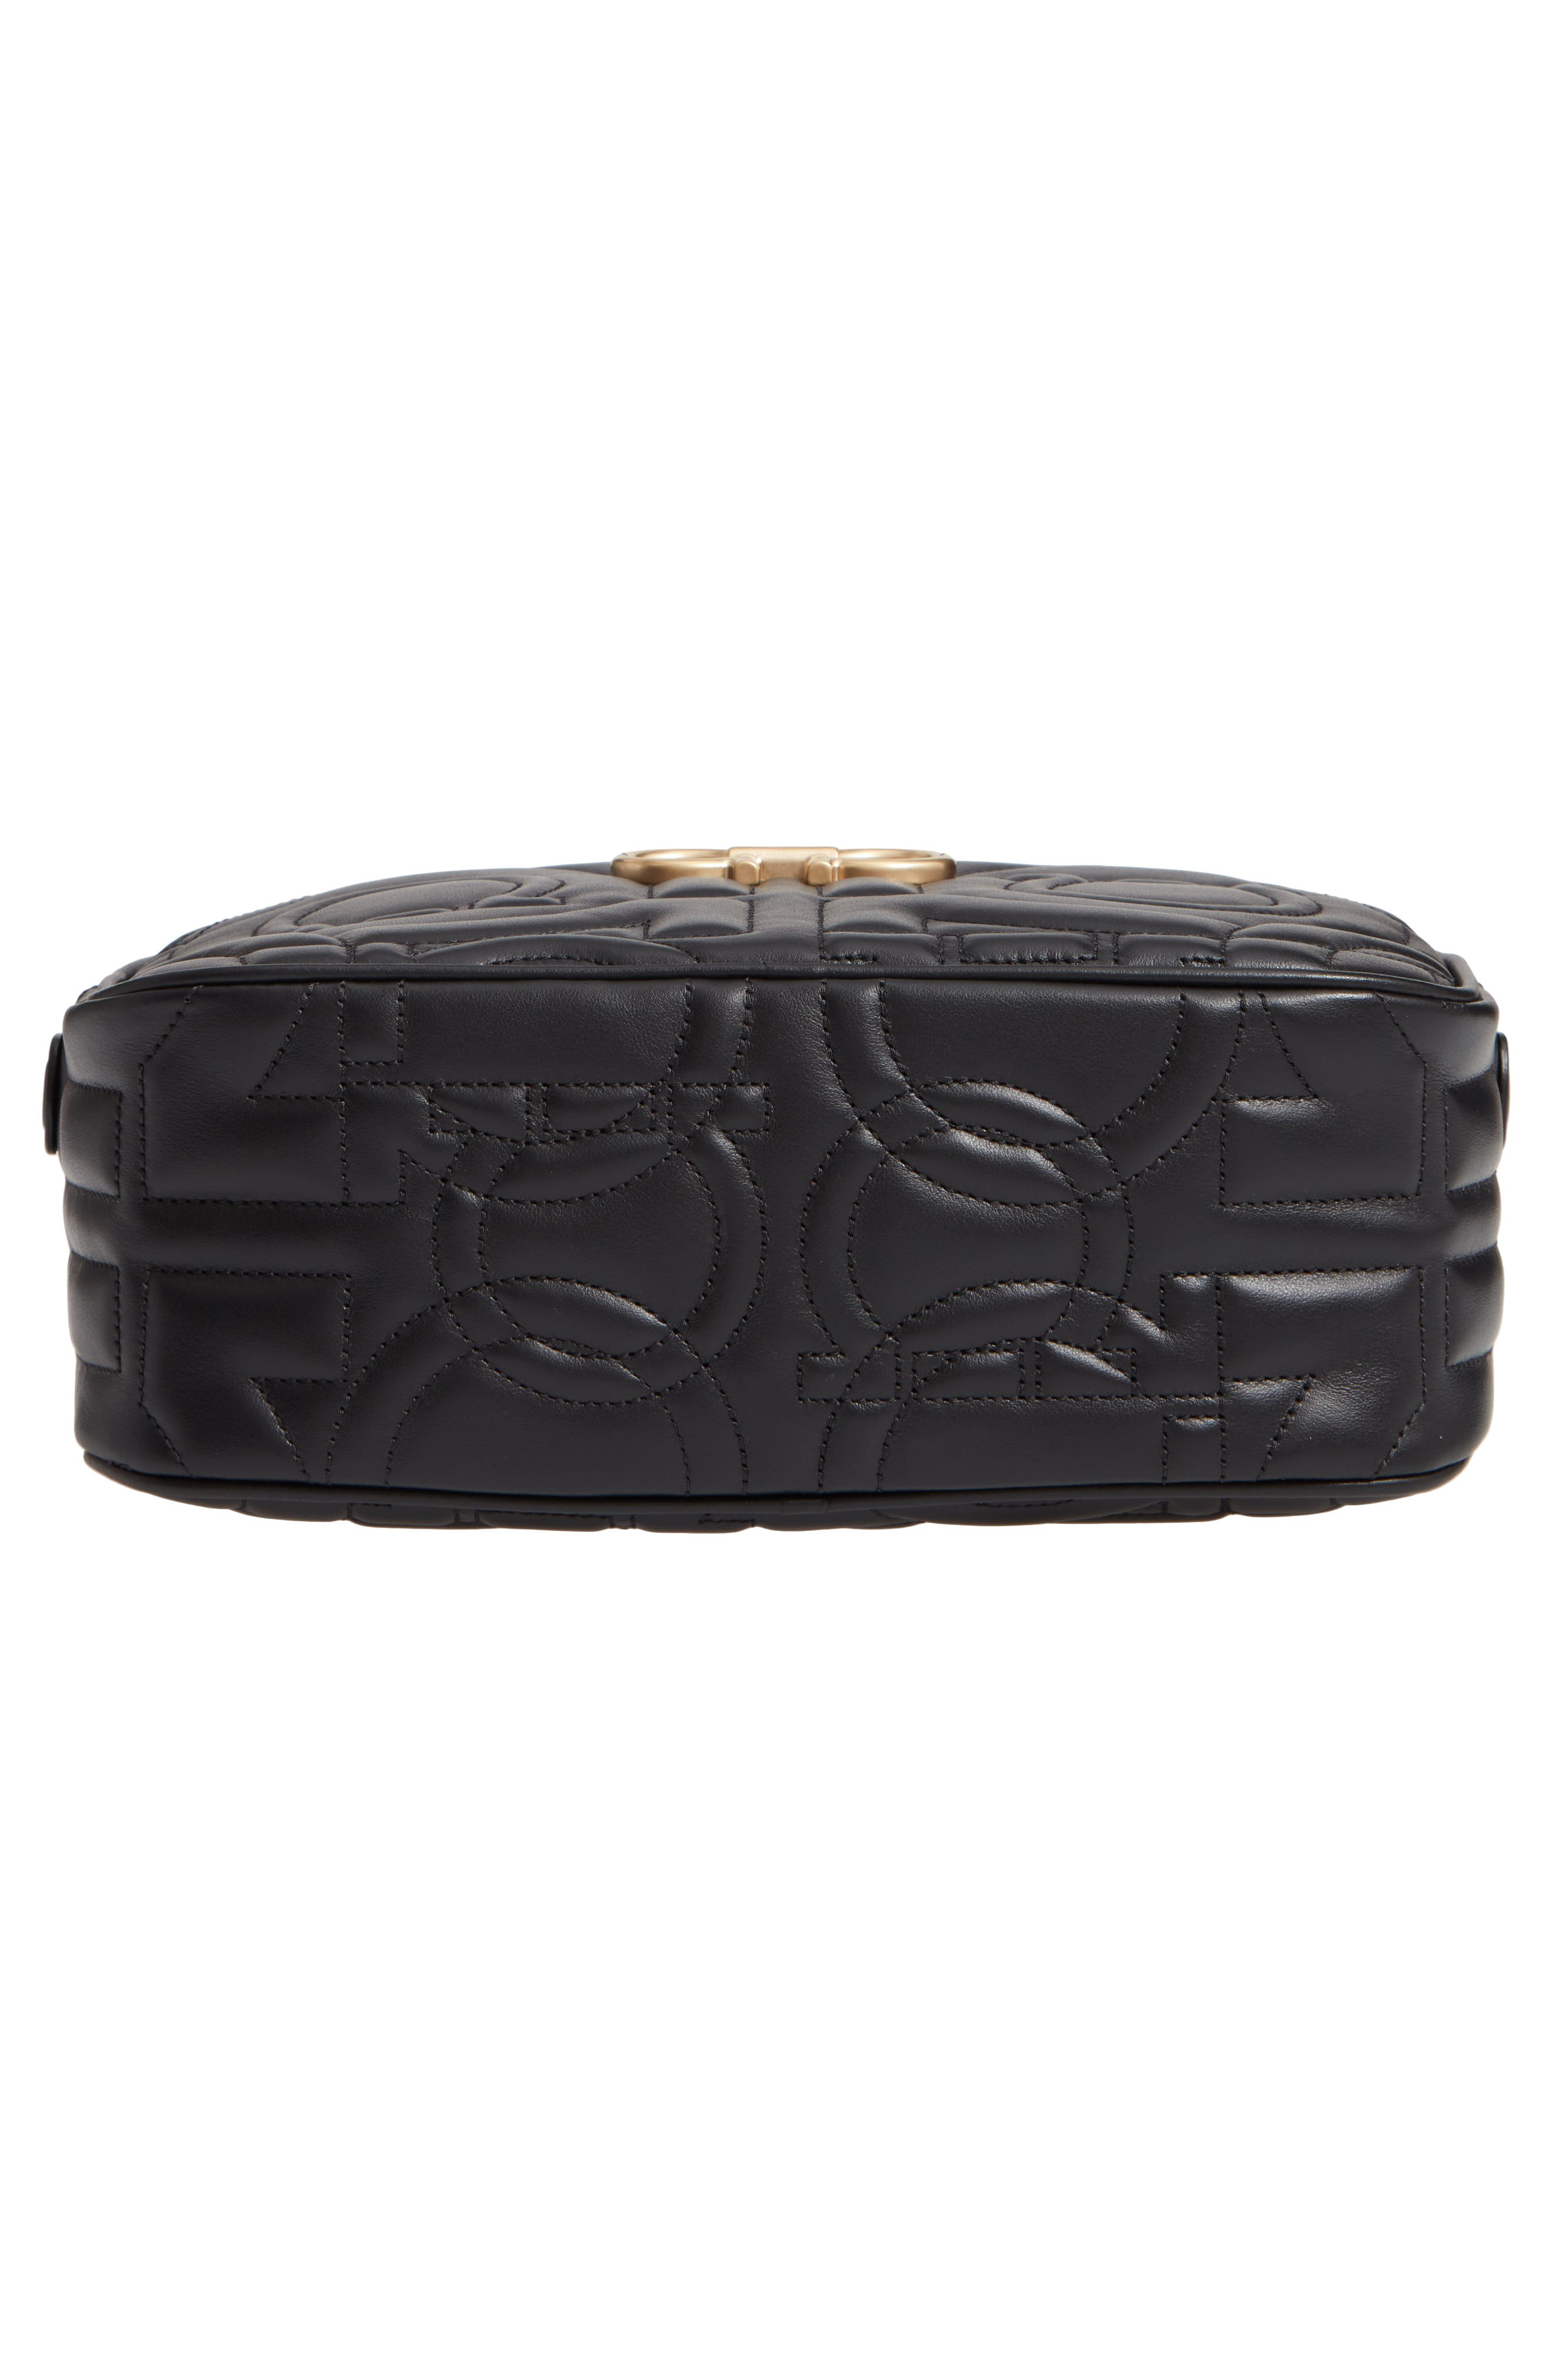 City Quilted Gancio Leather Camera Bag,                             Alternate thumbnail 6, color,                             001